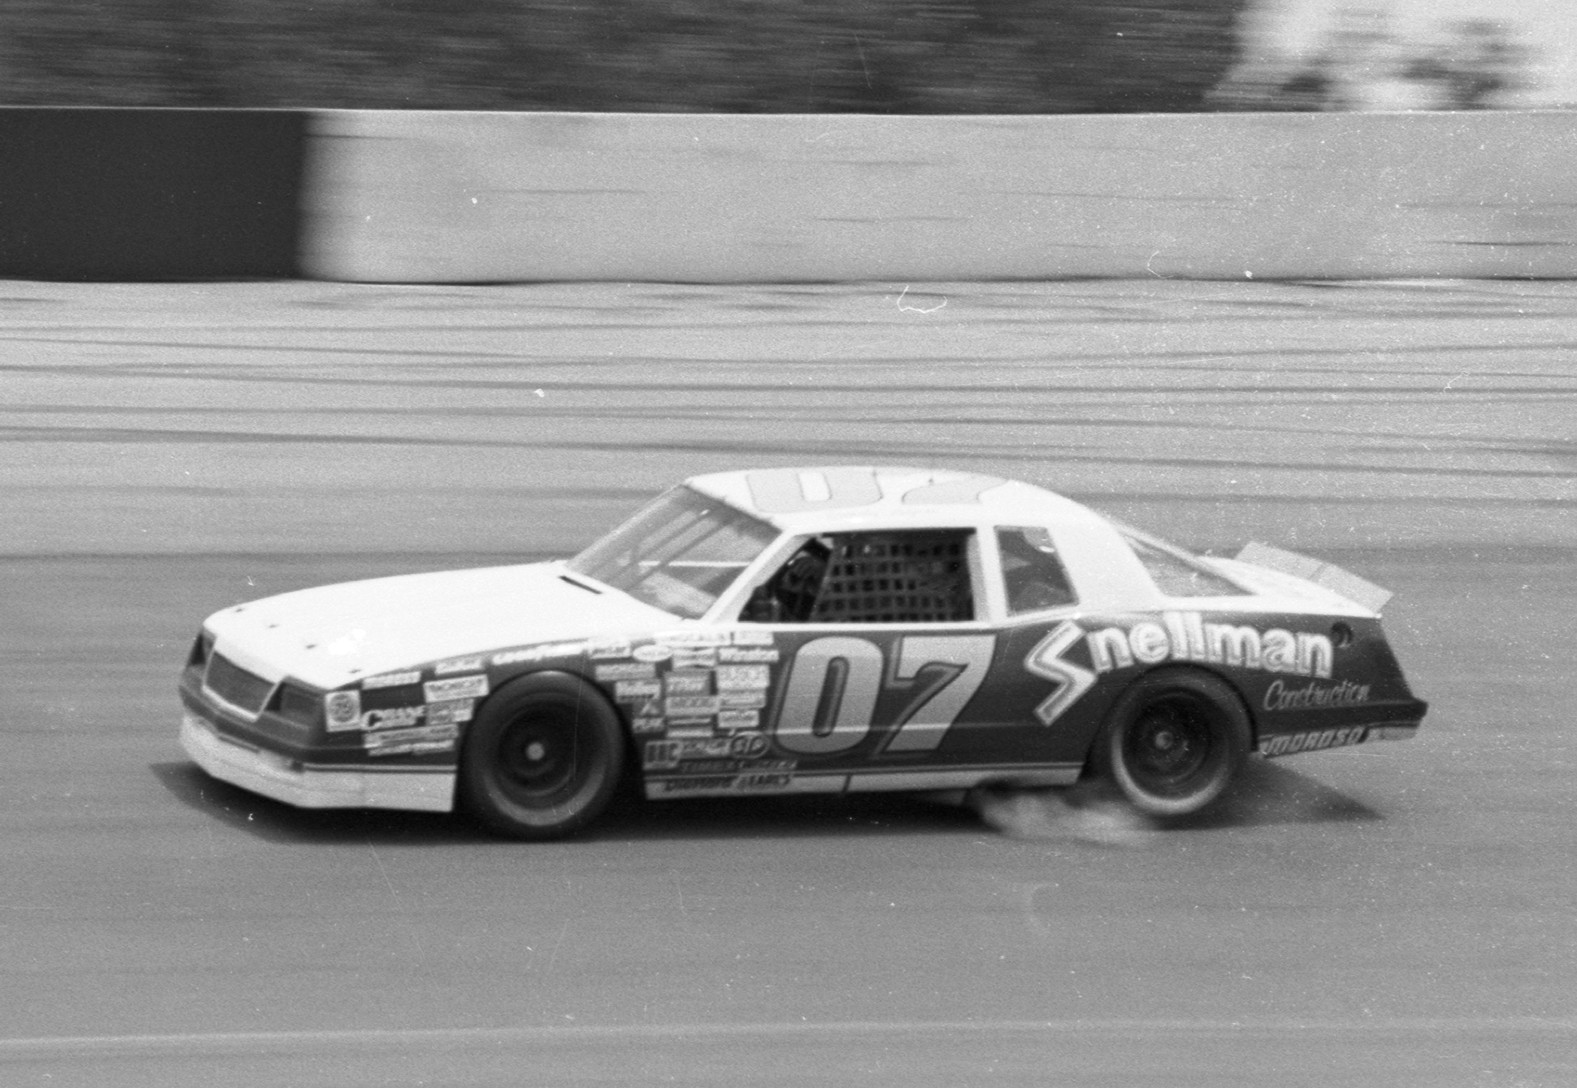 Randy LaJoie drives the No. 07 Snellman Racing Chevrolet during the 1986 NASCAR Winston Cup Series Miller High Life 500 at Pocono Raceway, June 8 1986.